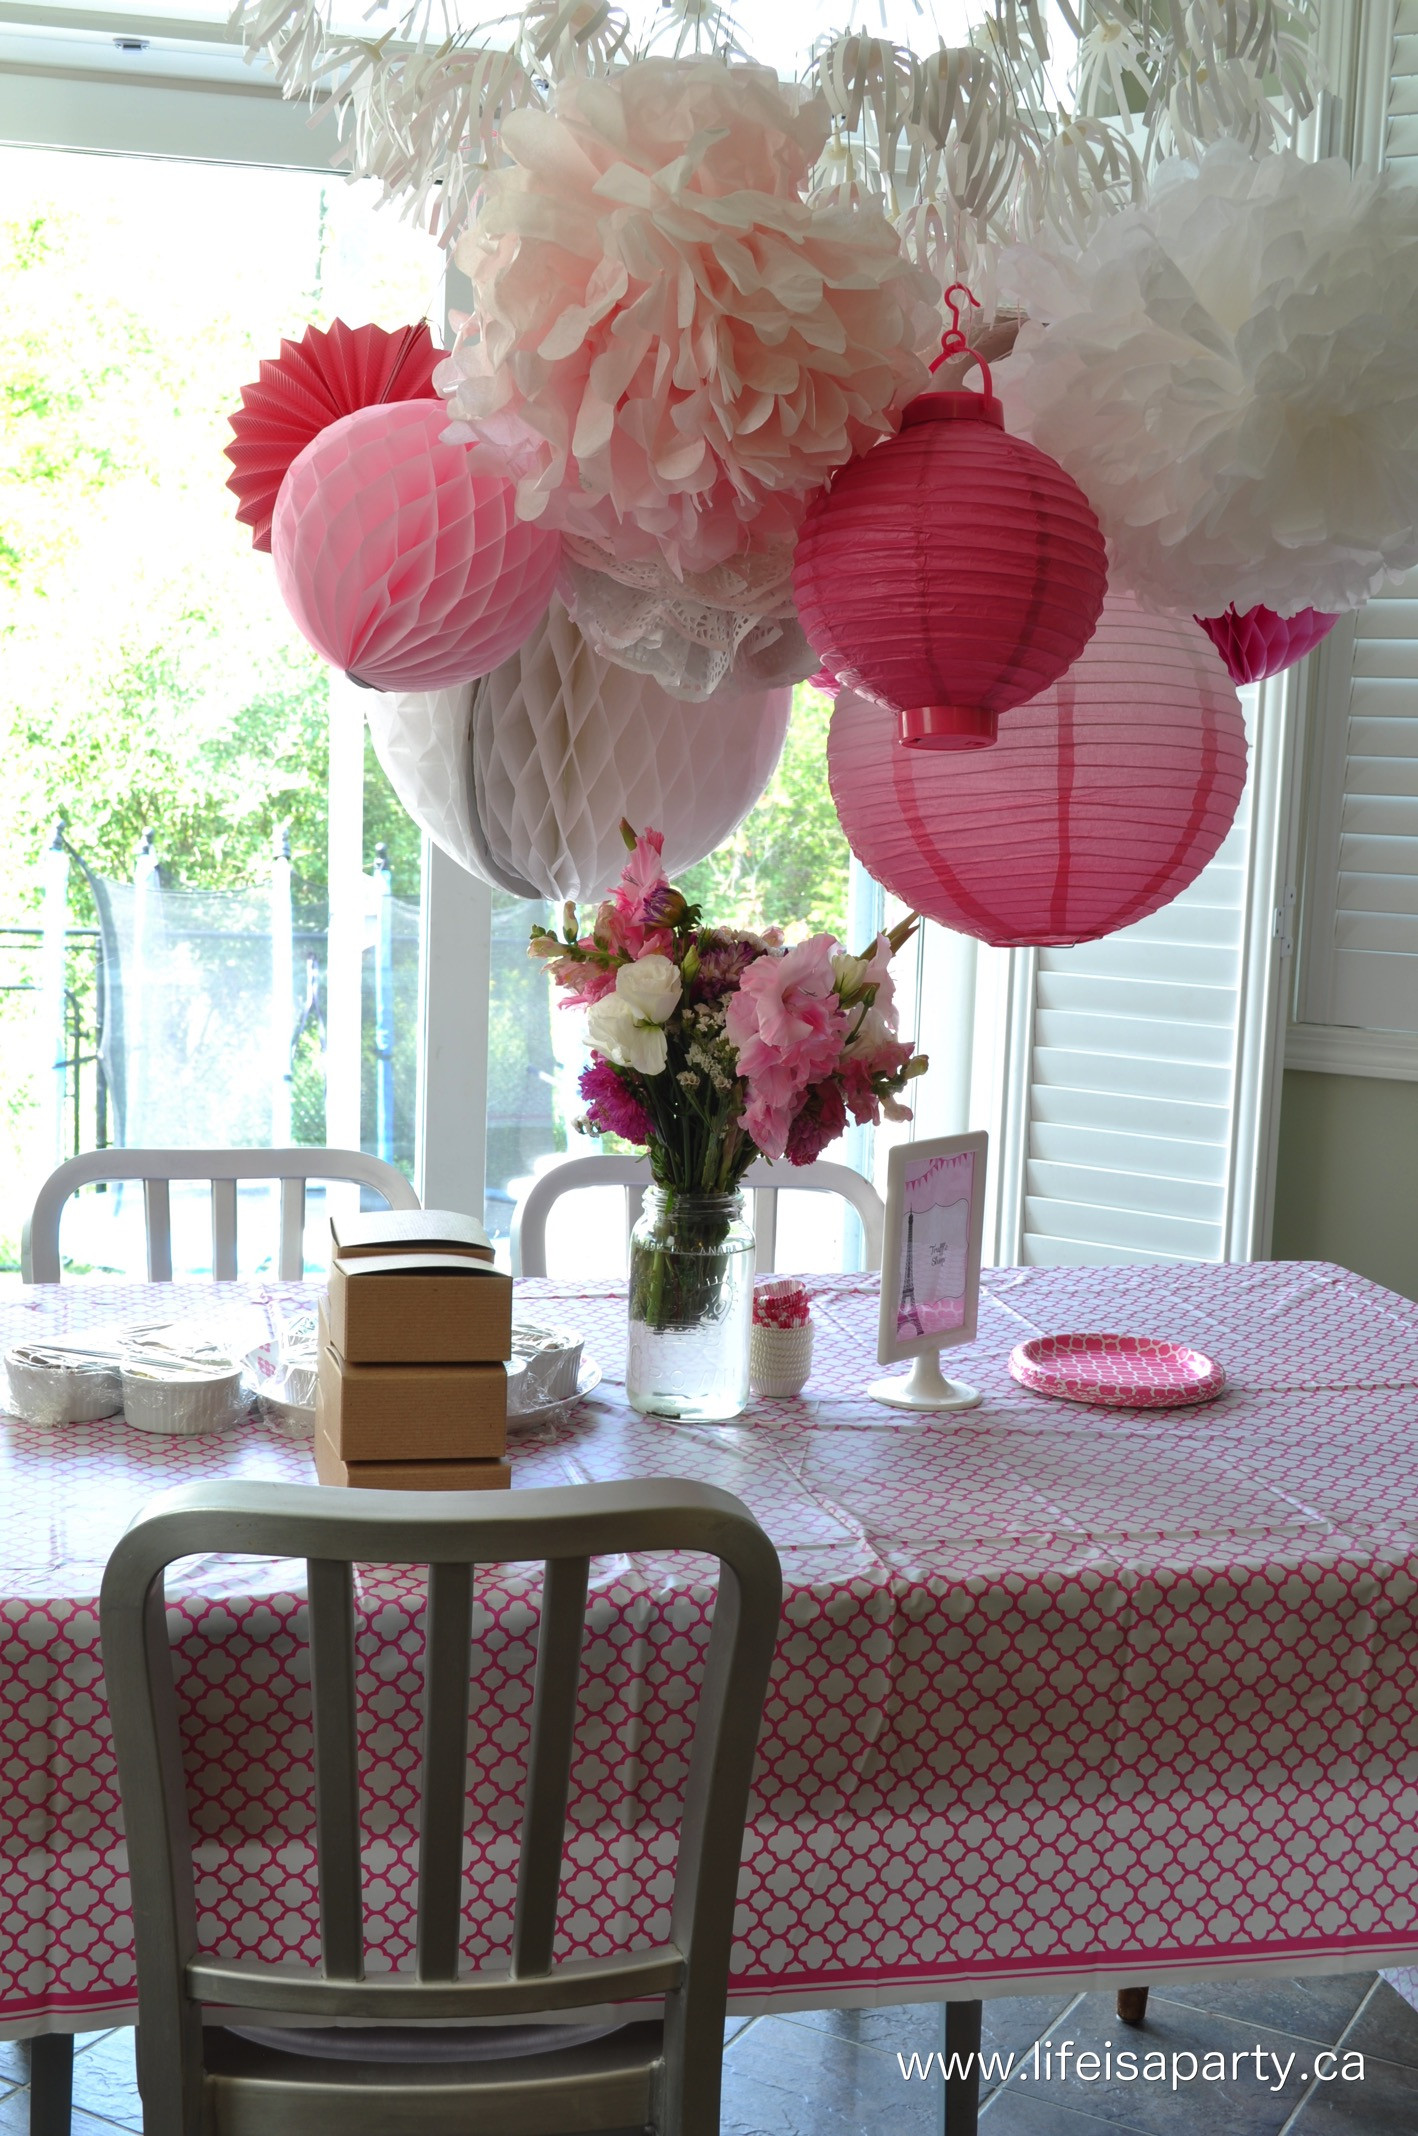 Best ideas about Paris Birthday Party . Save or Pin Paris Birthday Party Part e Party Activities and Now.